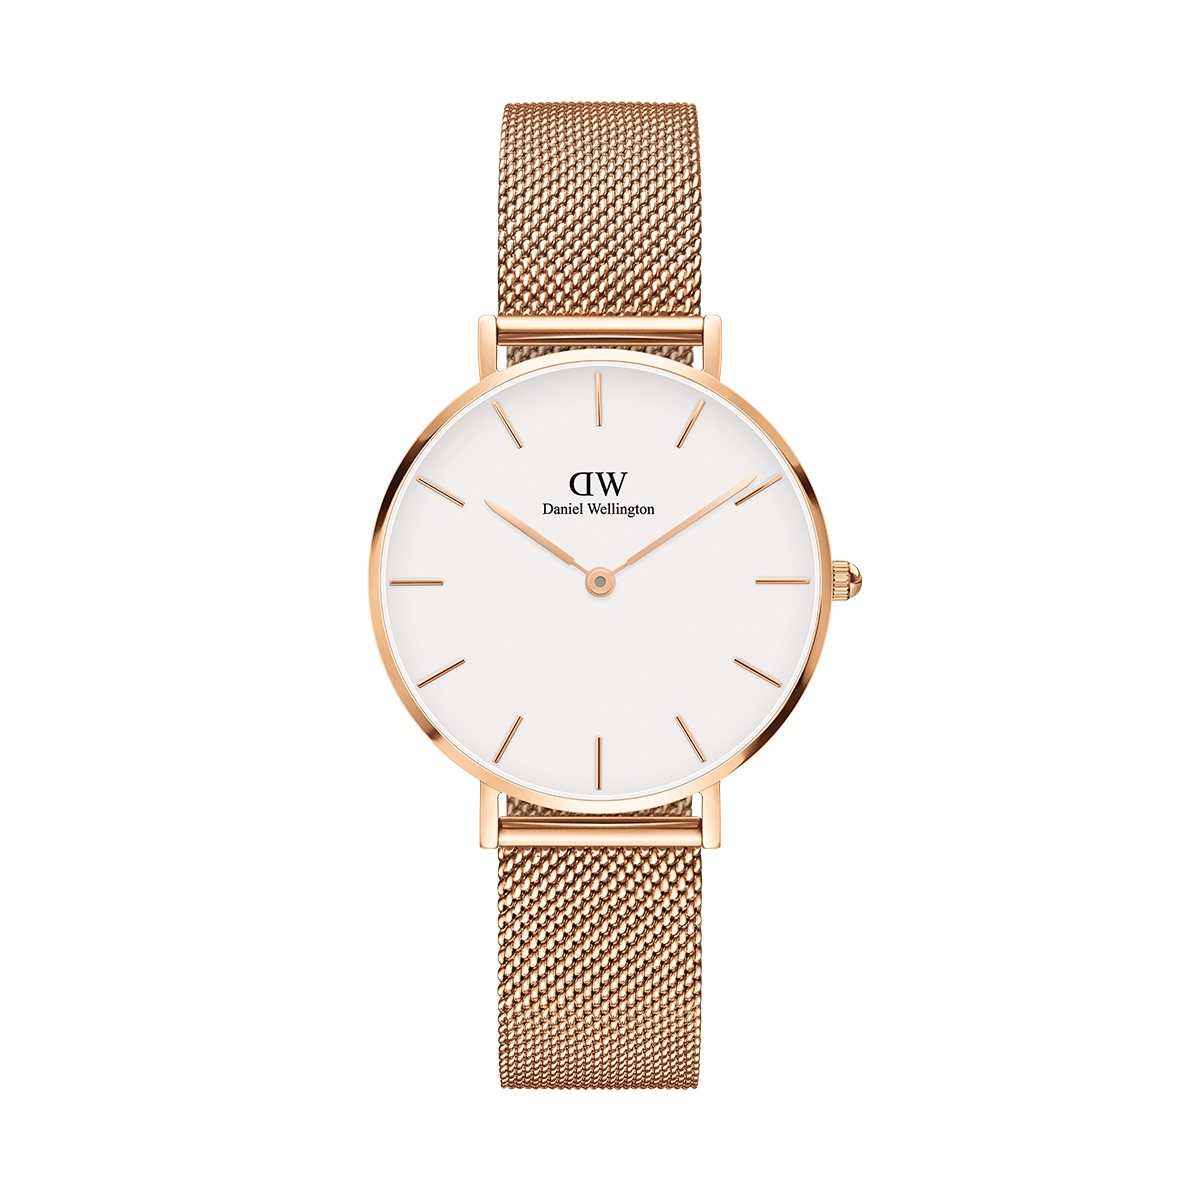 DANIEL WELLINGTON CLASSIC BLACK PETITE MELROSE ROSE GOLD (DW00100161) 32MM